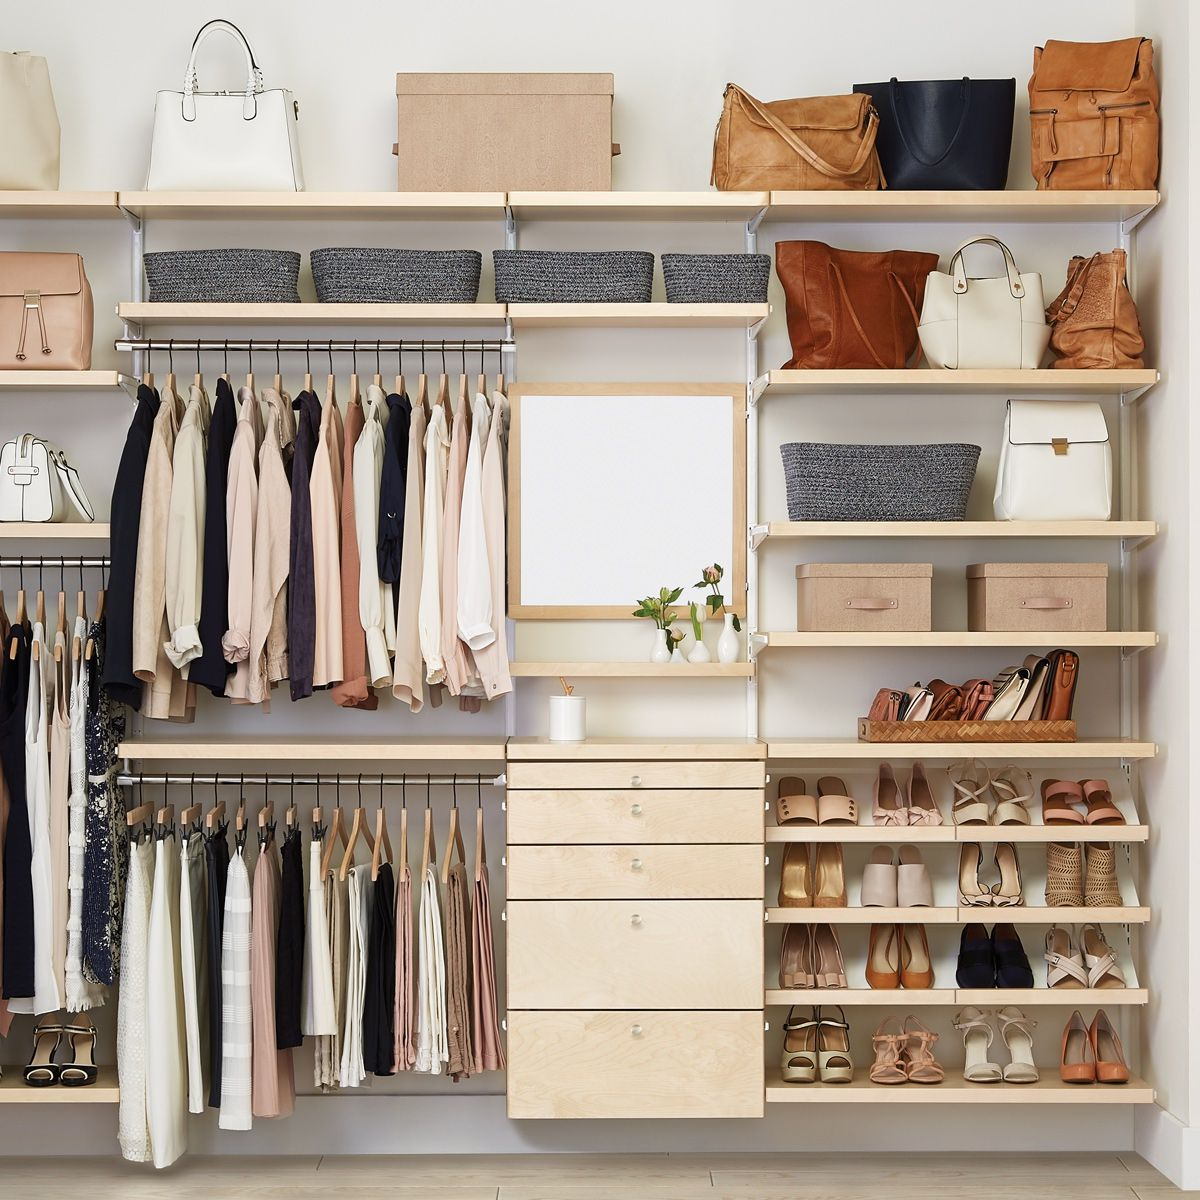 Getting Dressed Just Got More Fun Design A Custom Closet Solution Based On Your Budget And Your Space Closet Decor No Closet Solutions Closet Remodel